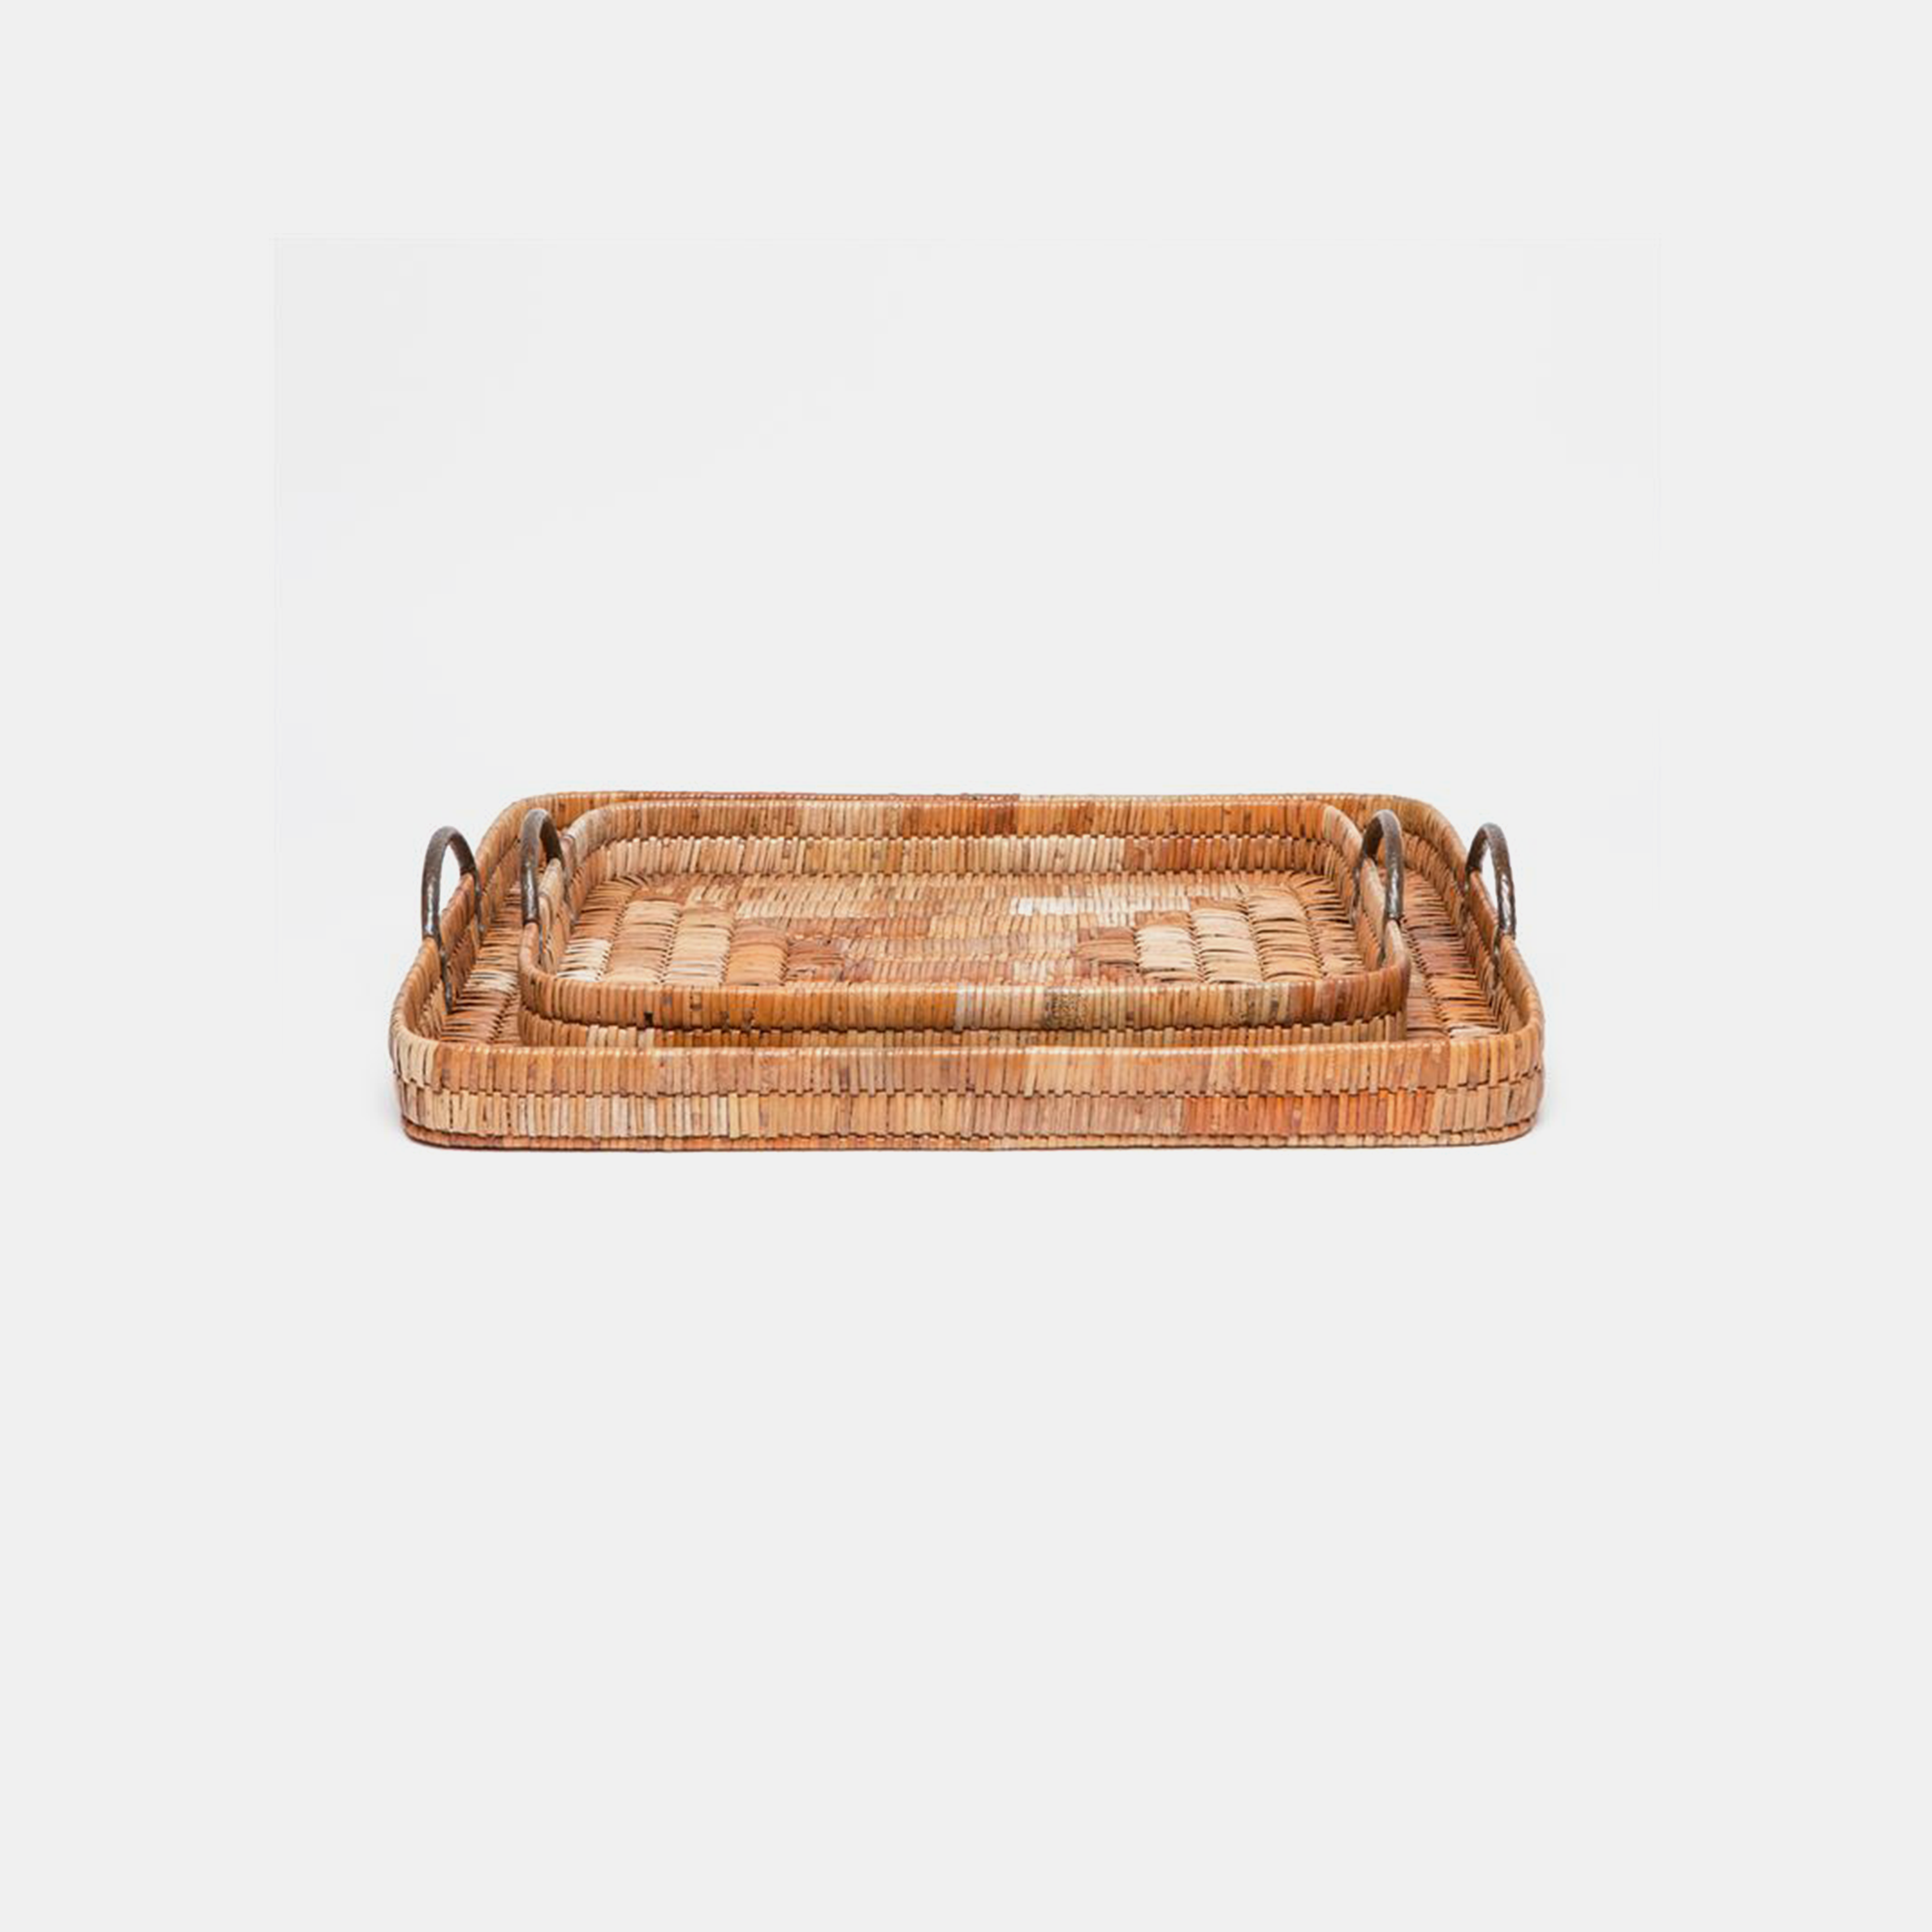 Royston XL Rectangular Trays  24''L x 18'' W x 5''H, 30''L x 24'' W x 5''H Also available as rectangular, square, or circular trays. SKU31388MGS